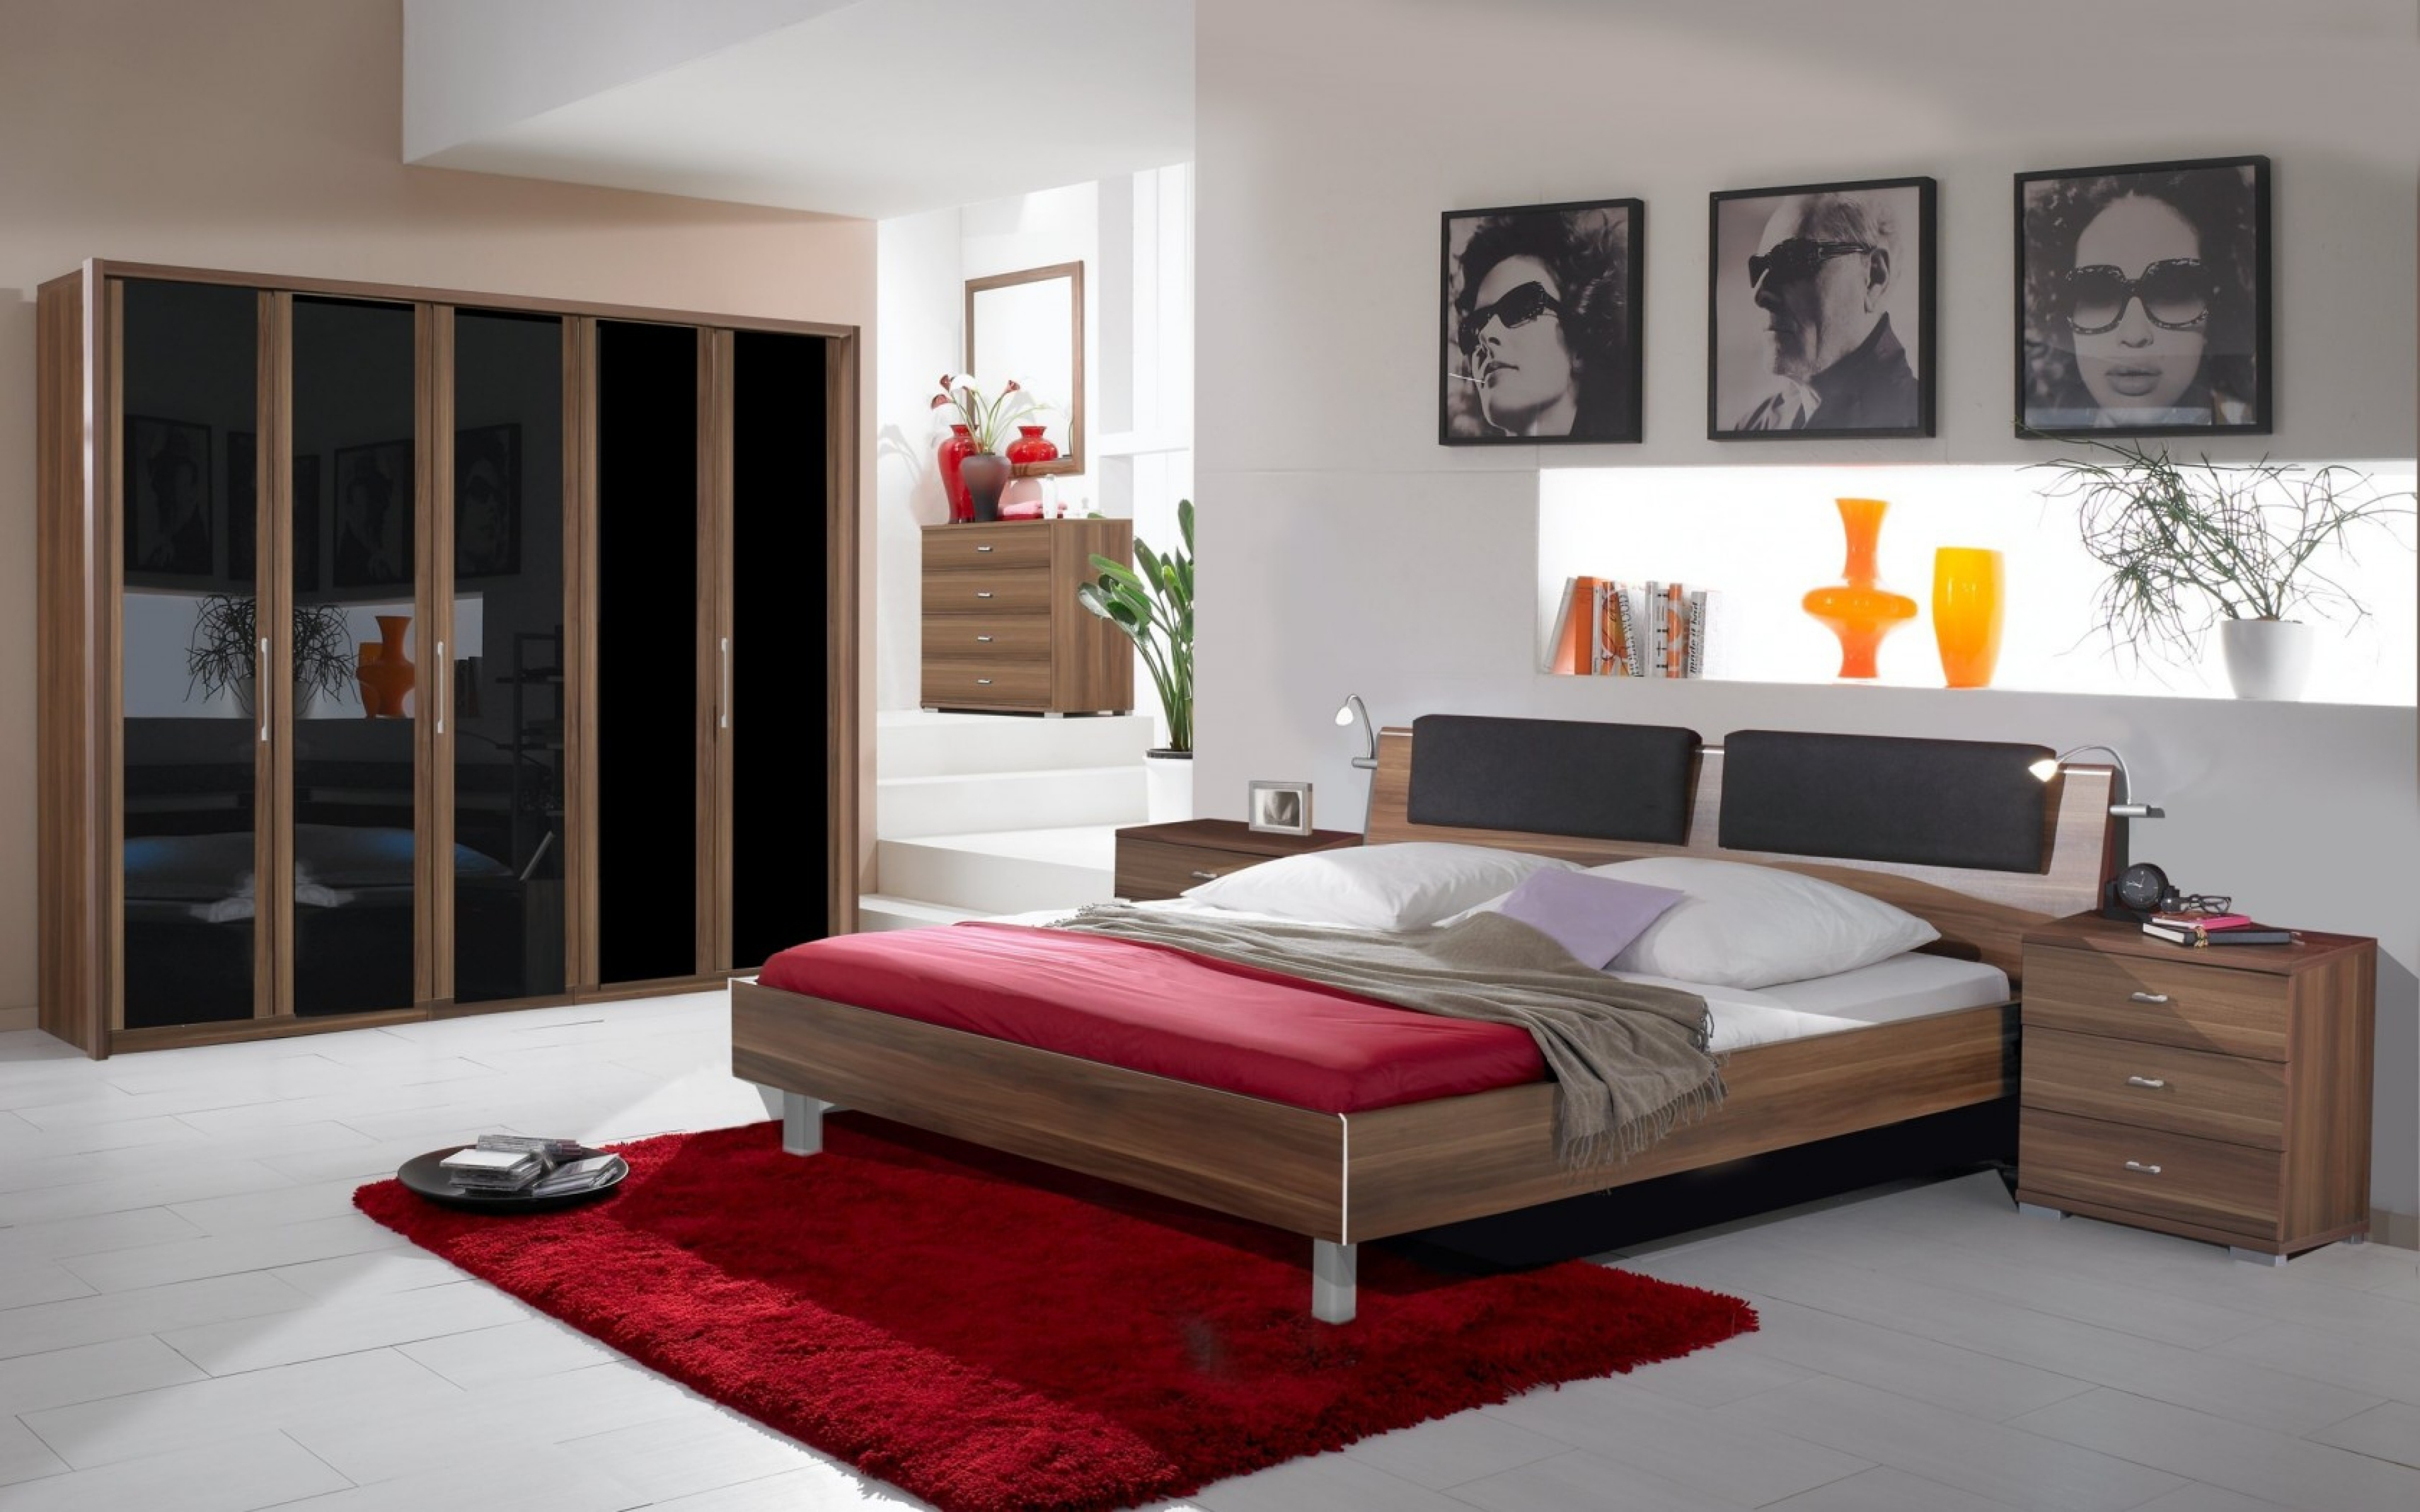 teen-bedroom-interior-designs-and-decoration-cheap-ikea-simple-best-modern-decorating-with-pop-art-wall-picture-floating-drawer-red-bed_bedroom-interior-design_bedroom_bedroom-sets-for-sale-paint-idea